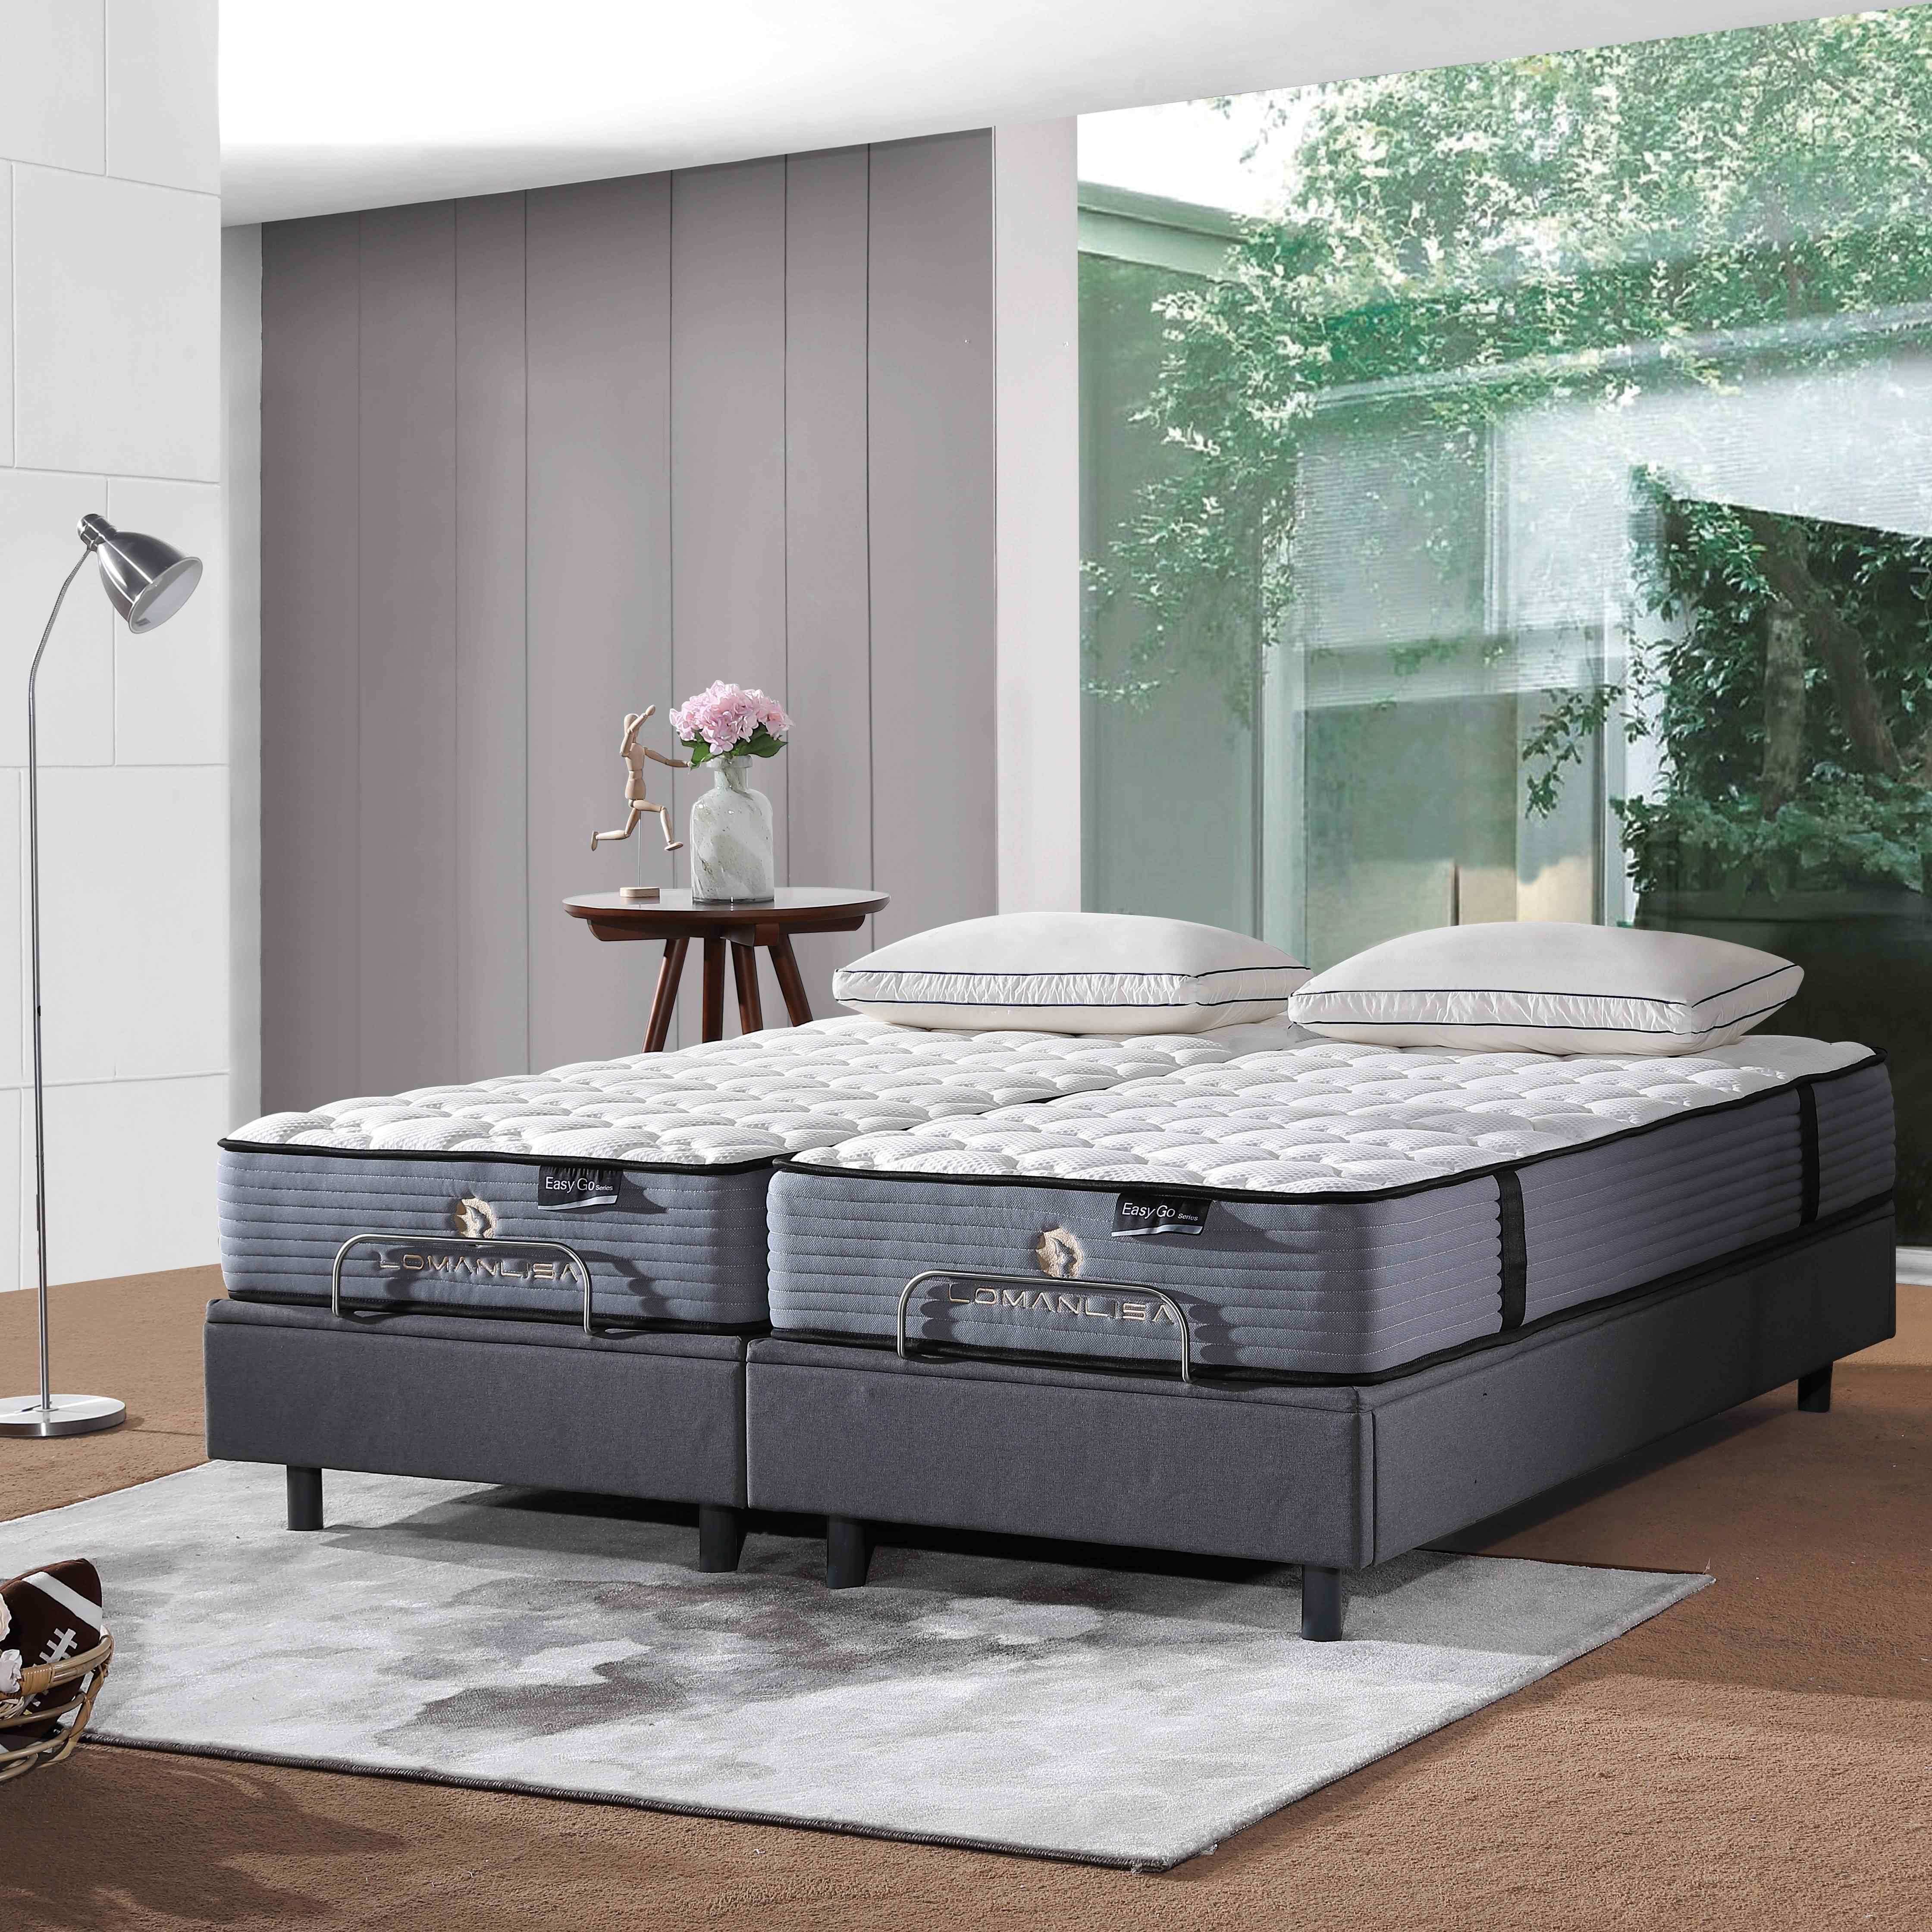 JLH electric mattress warehouse locations Certified for bedroom-2